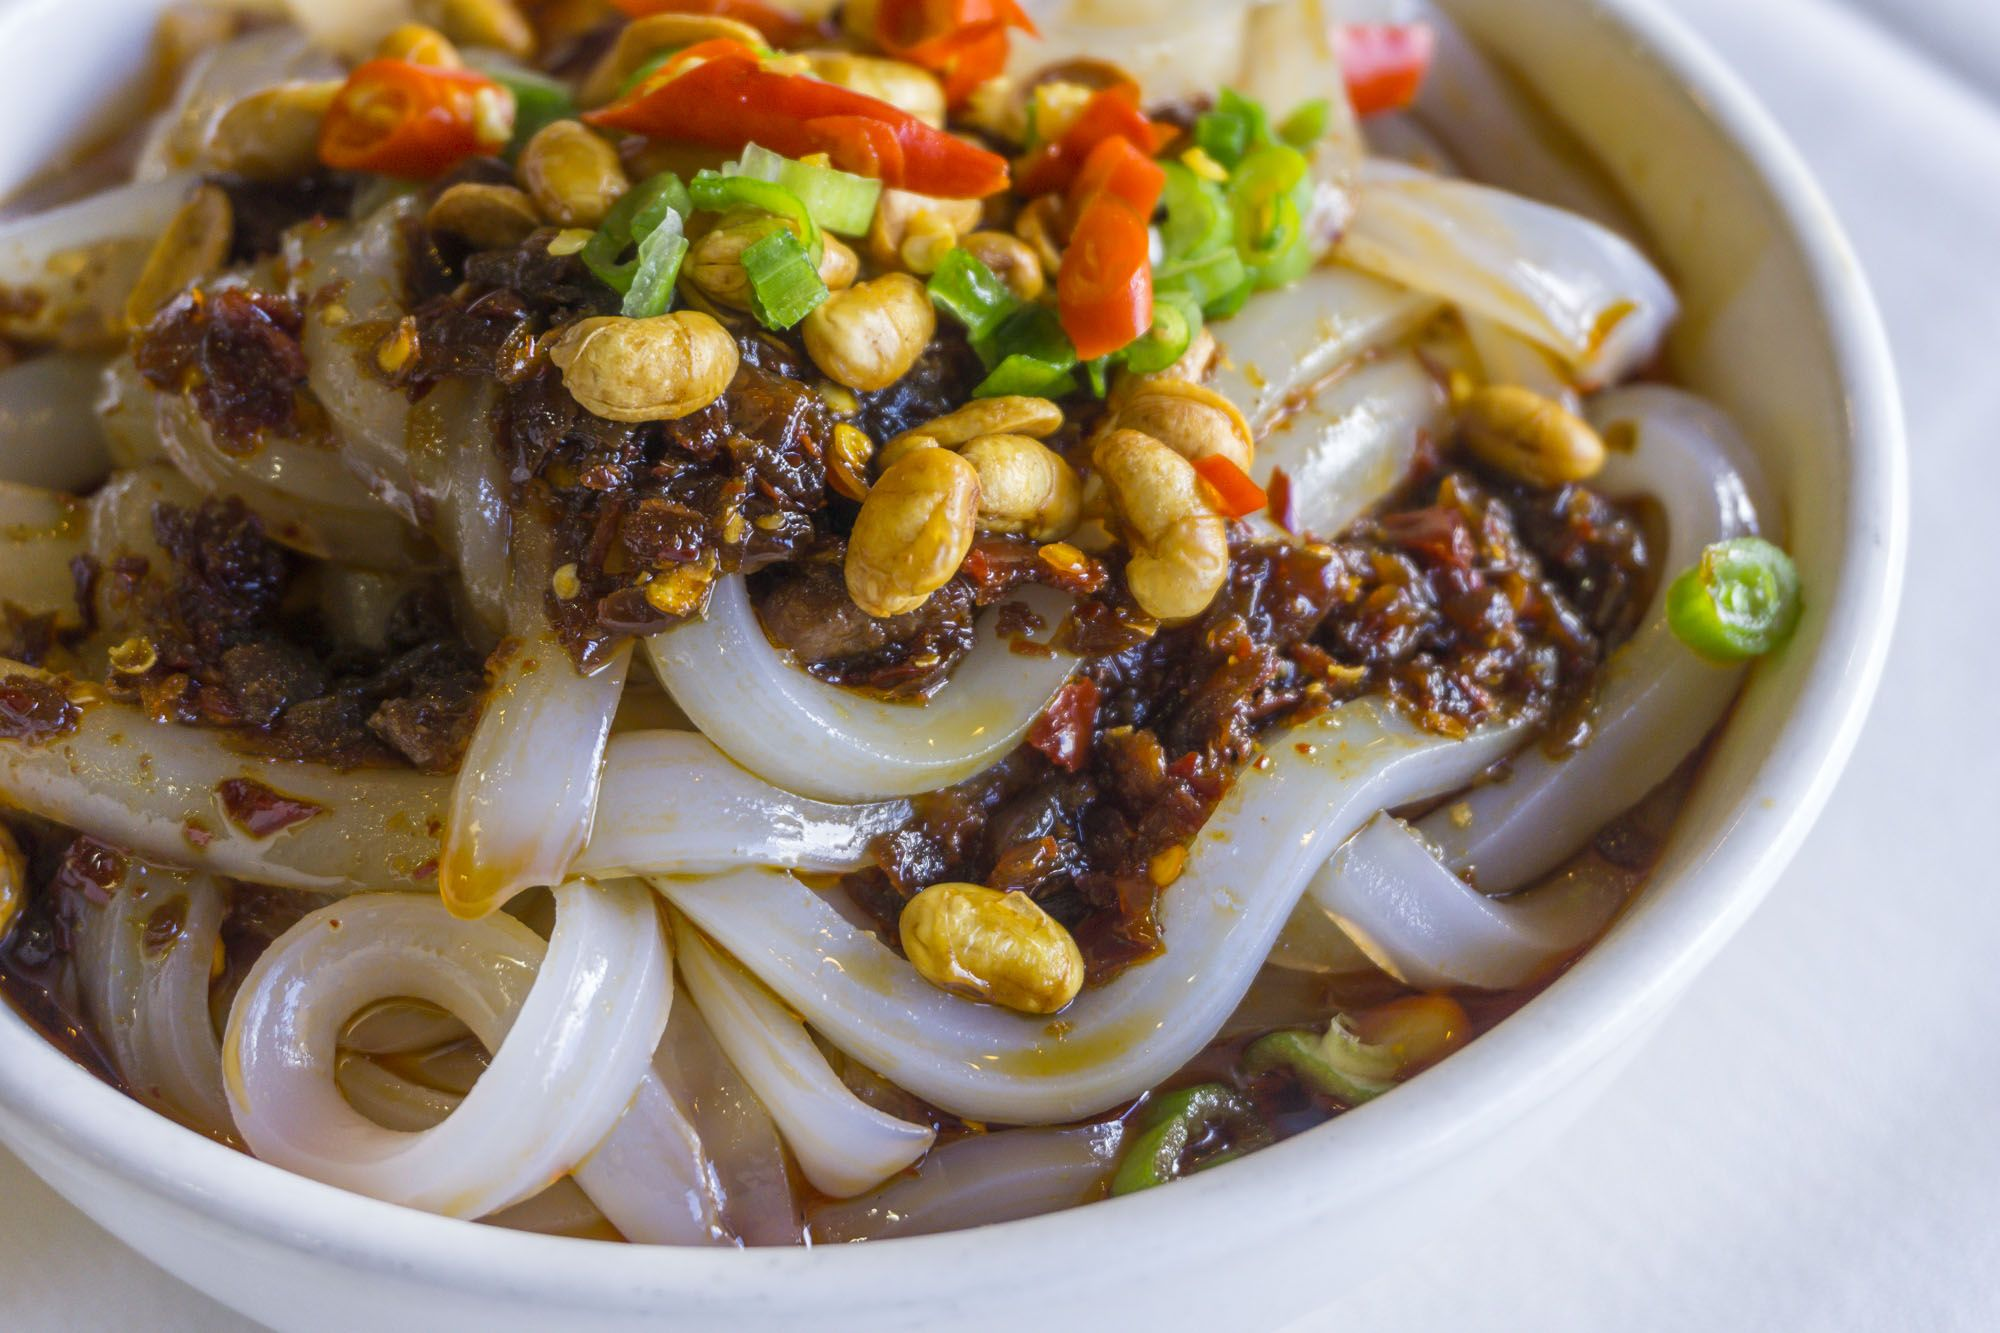 Where To Find The Best Chinese Food In Las Vegas Best Chinese Food Seattle Restaurants Food